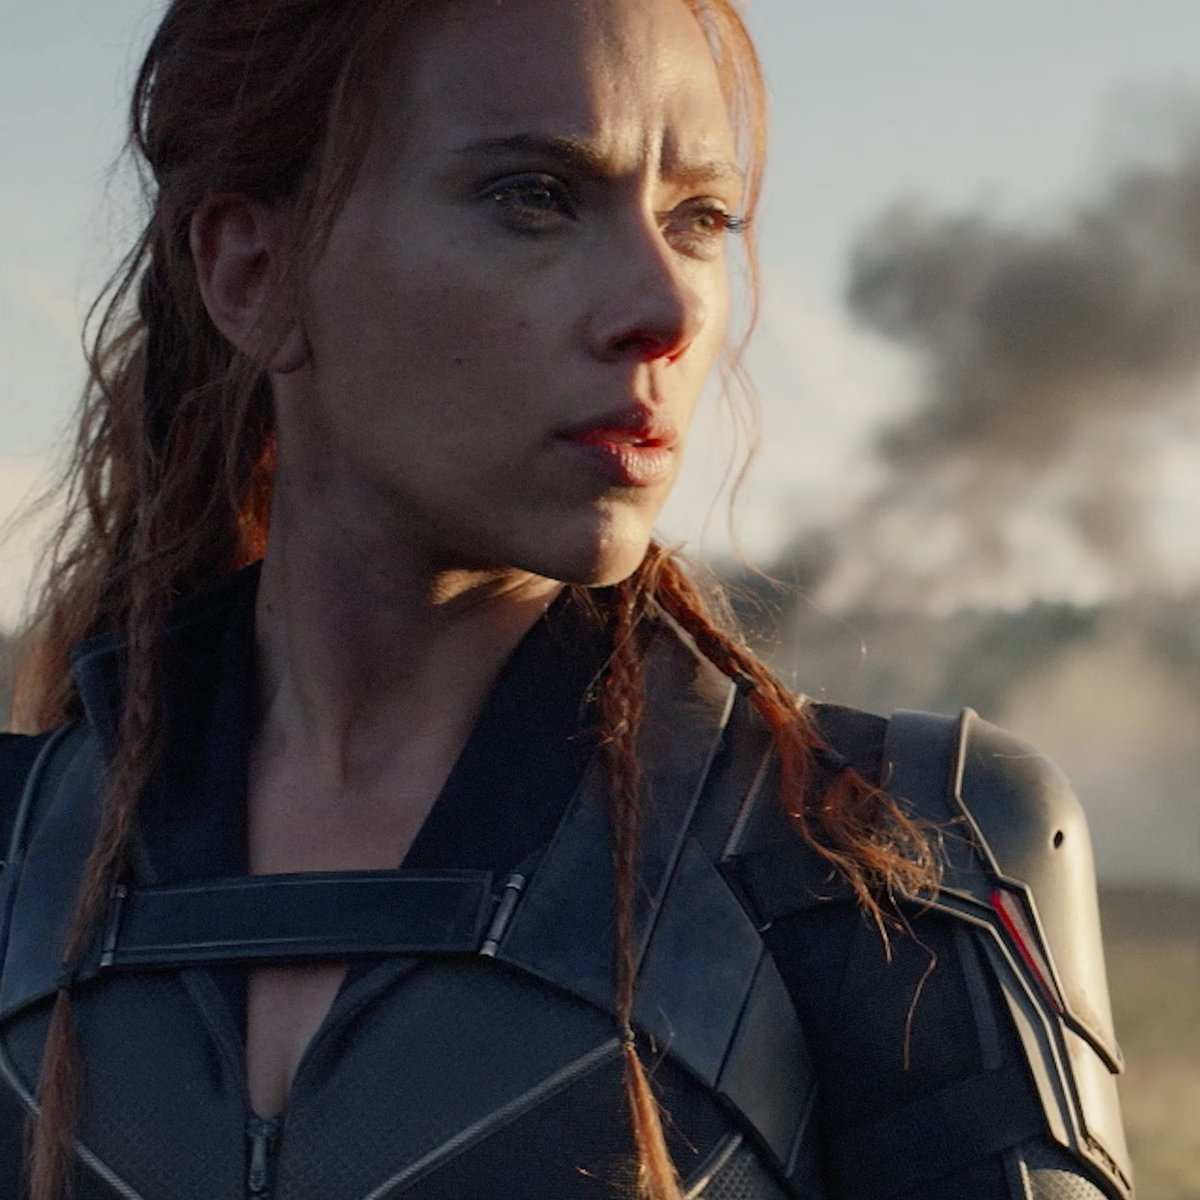 Get ready for the movie event of the Summer. 🍿 Marvel Studios' #BlackWidow is now available for tickets and pre-orders. Experience it July 9. https://t.co/sHNTjtkdSk https://t.co/ej5cknFr1R